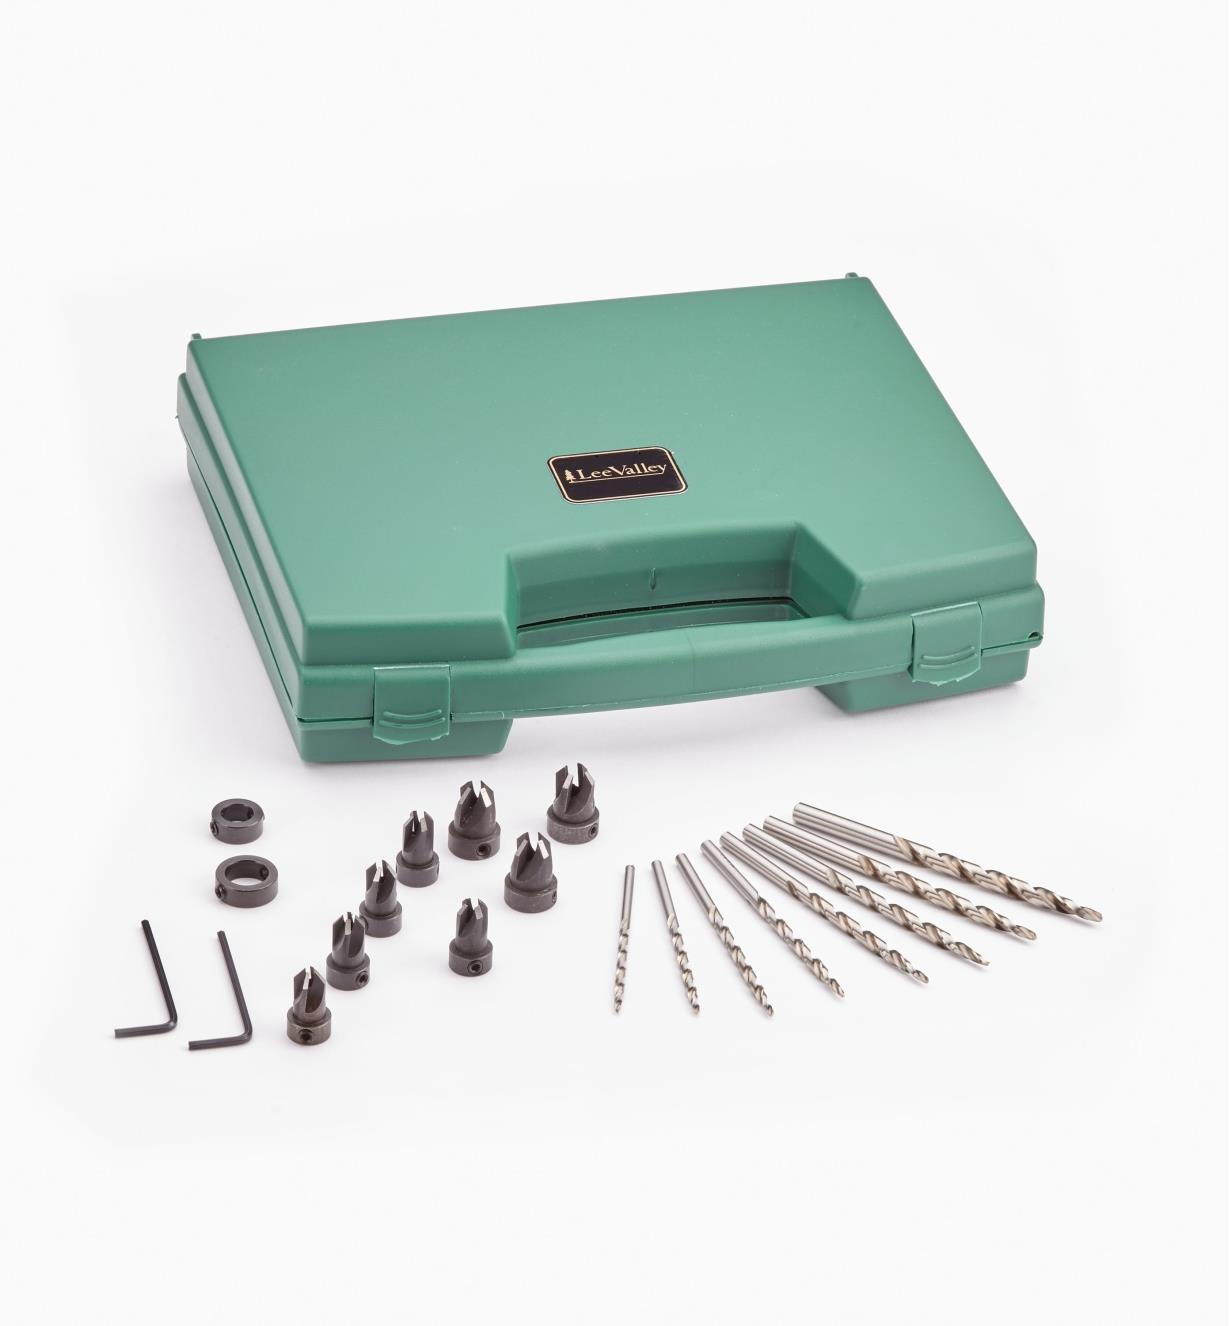 07J1580 - Boxed Set of 8 Complete Drill / Countersink / Counterbore Units (all sizes)